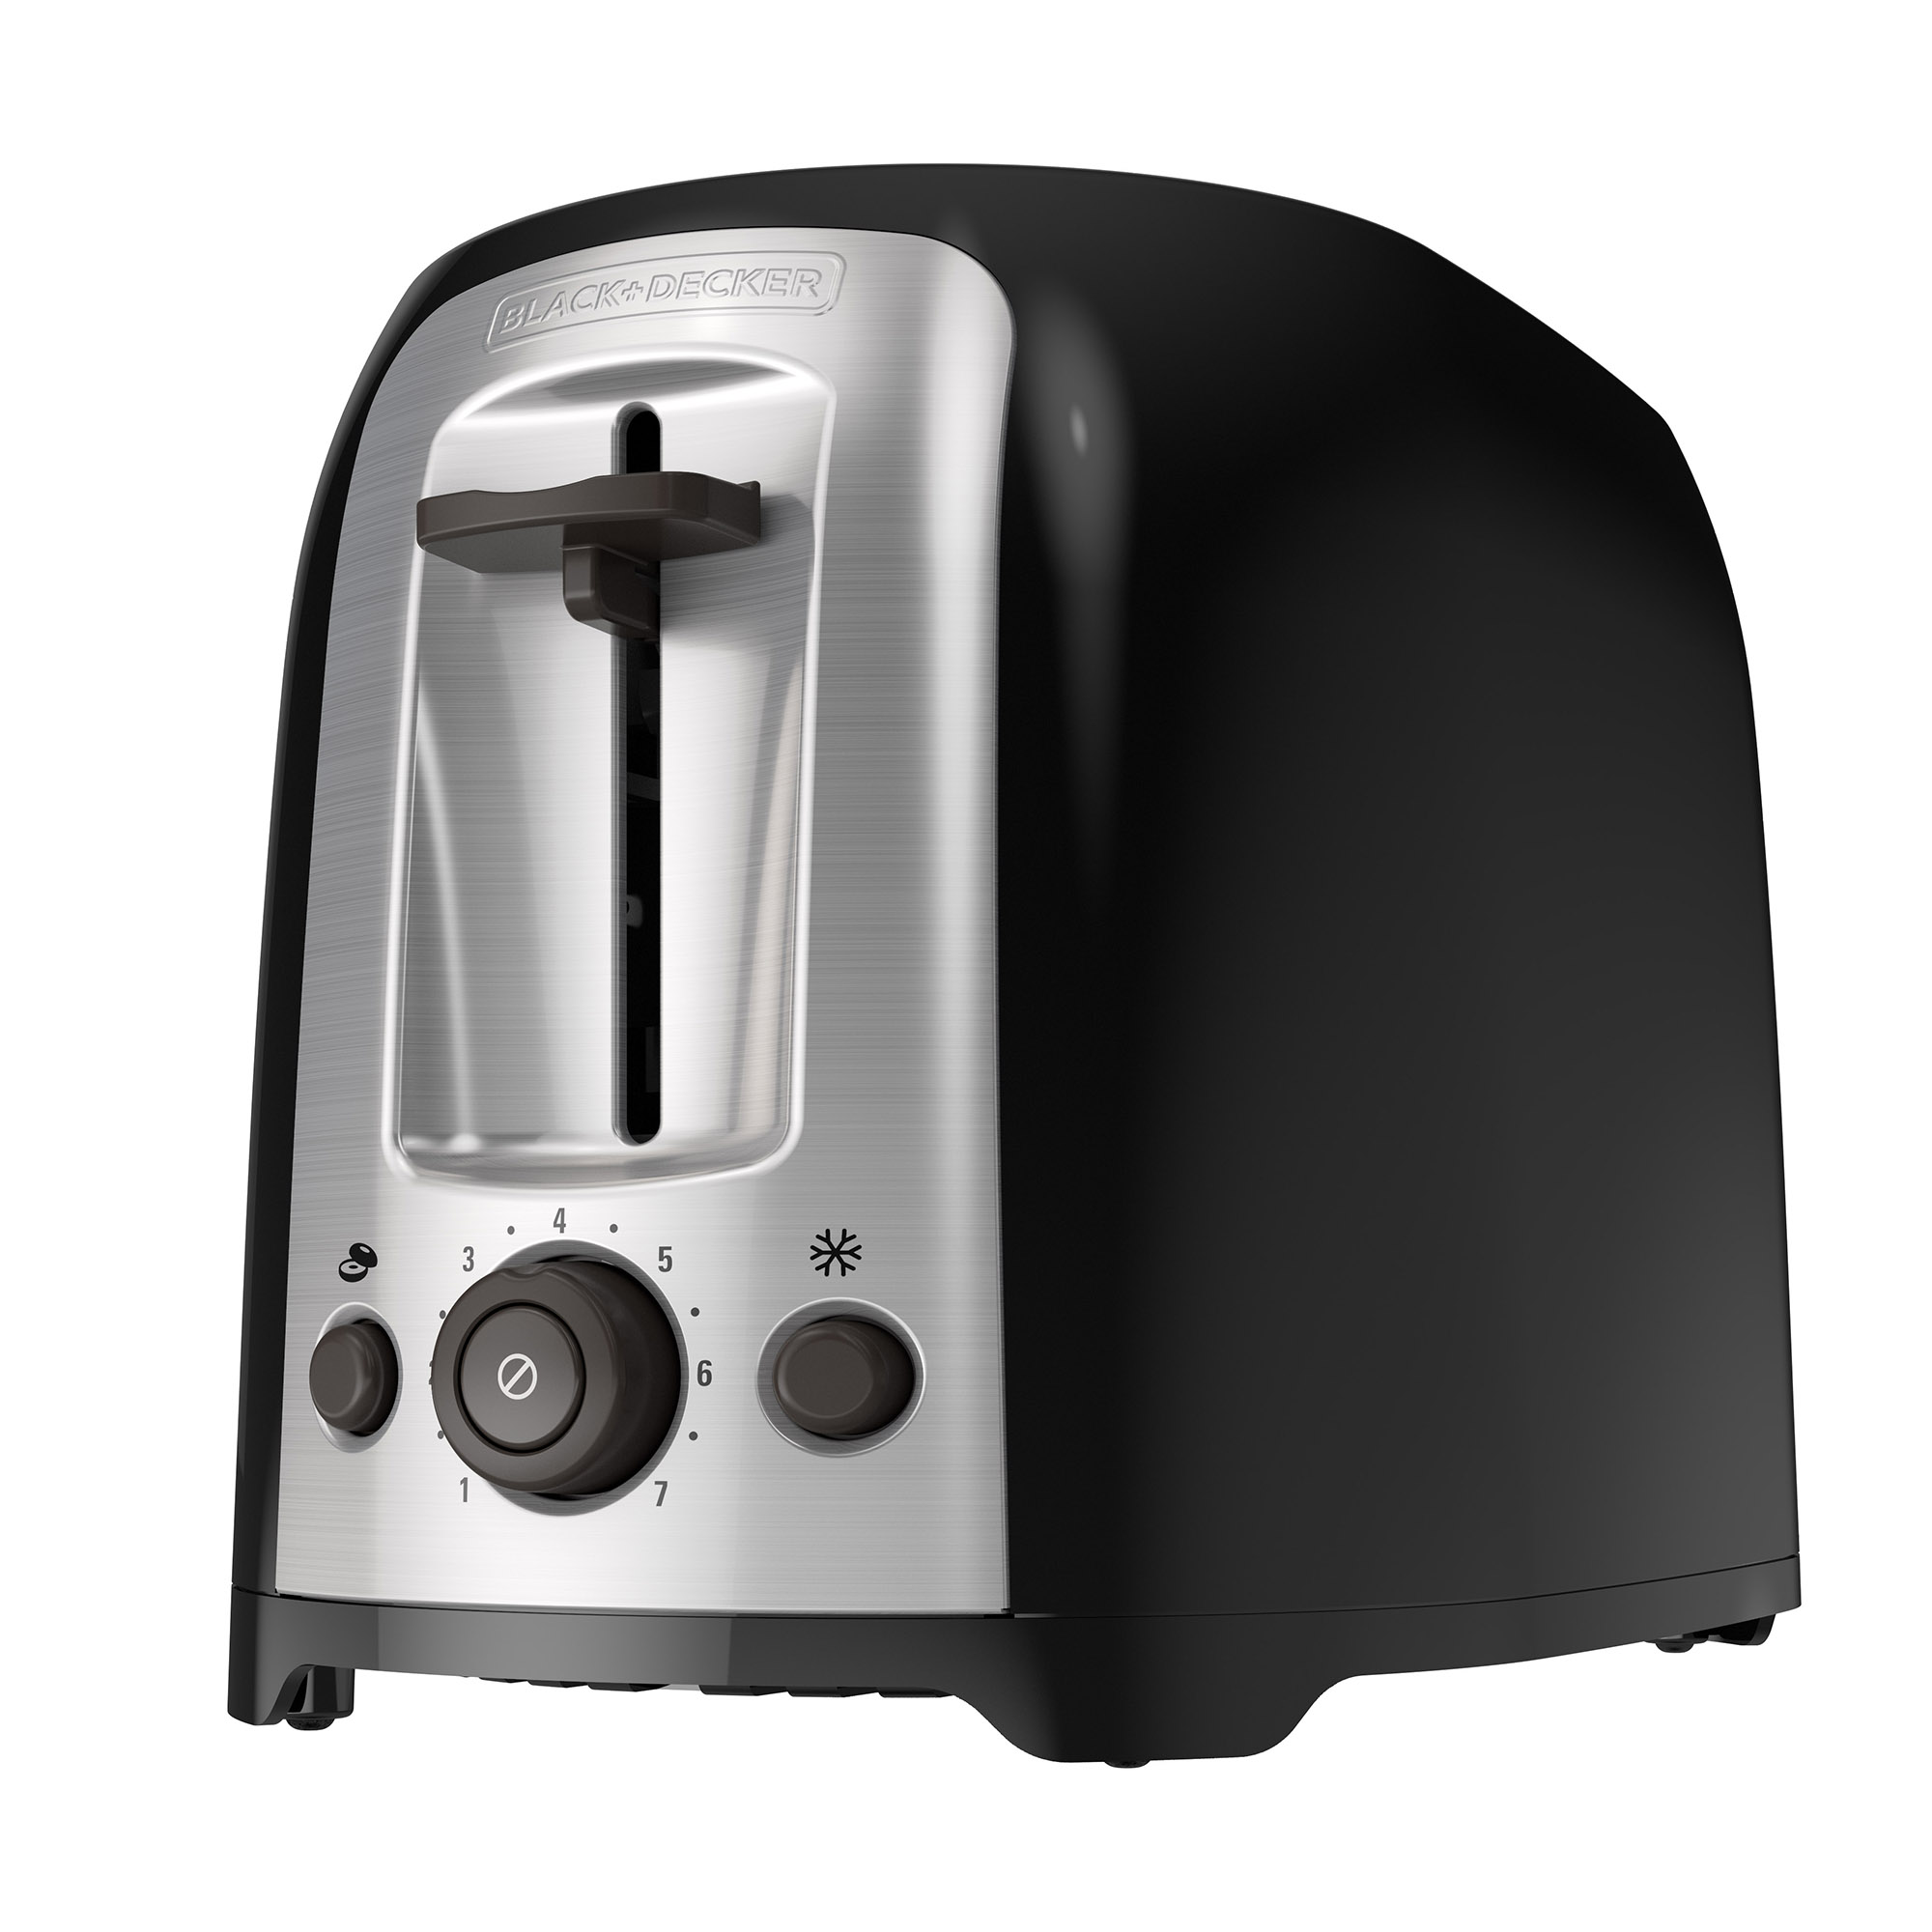 BLACK+DECKER 2-Slice Extra Wide Slot Toaster, Black/Silver, TR1278B